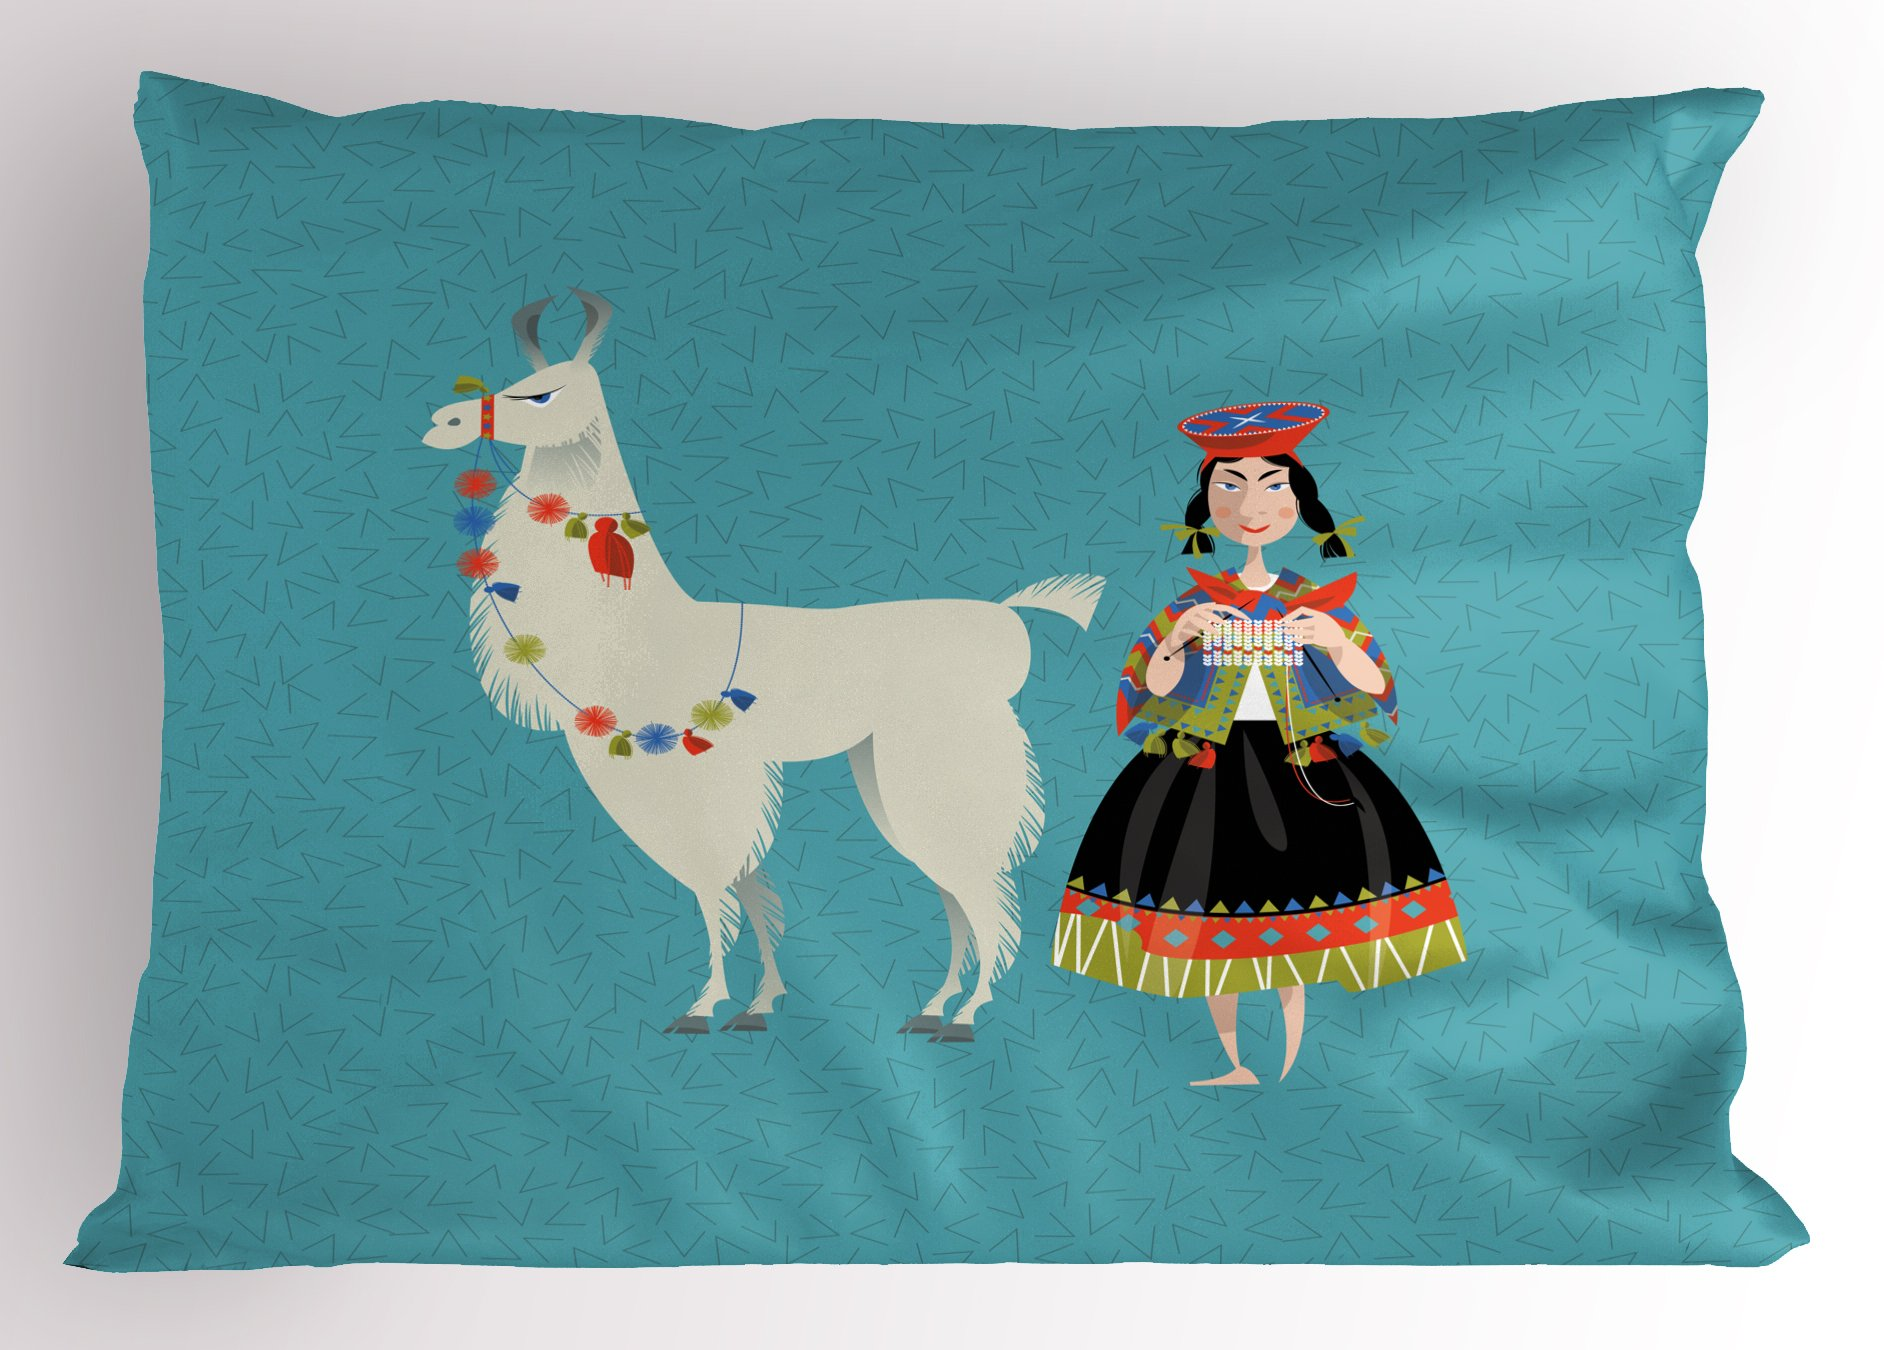 Ambesonne Llama Pillow Sham, Peruvian Woman Knitting with a White Alpaca Wrapped with Flower Colorful Illustration, Decorative Standard King Size Printed Pillowcase, 36 X 20 inches, Multicolor